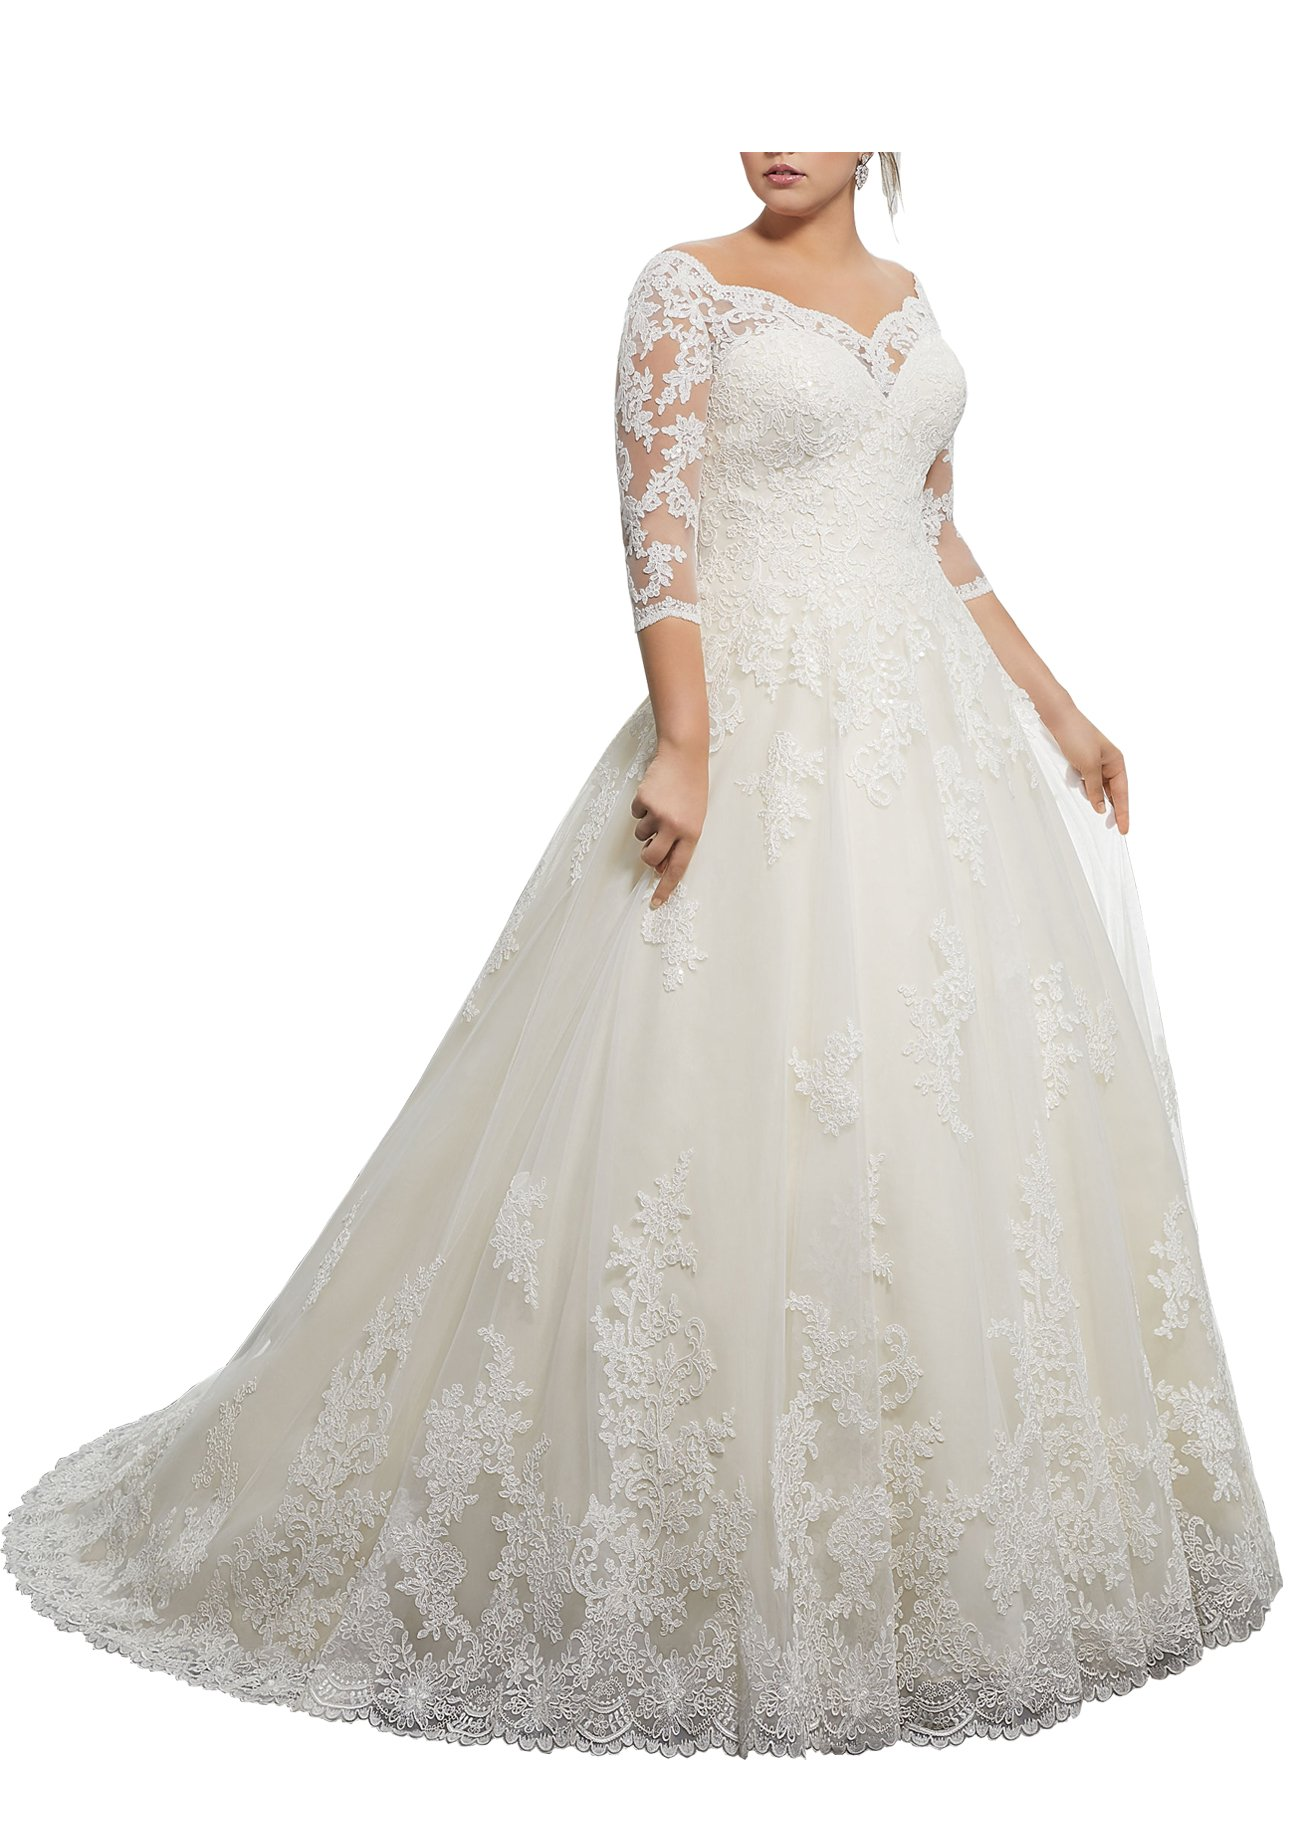 Beauty Bridal V Neck A-Line Wedding Dress For Bride Long Sleeves Lace Bridal Gowns (26W,T-Sleeves White)